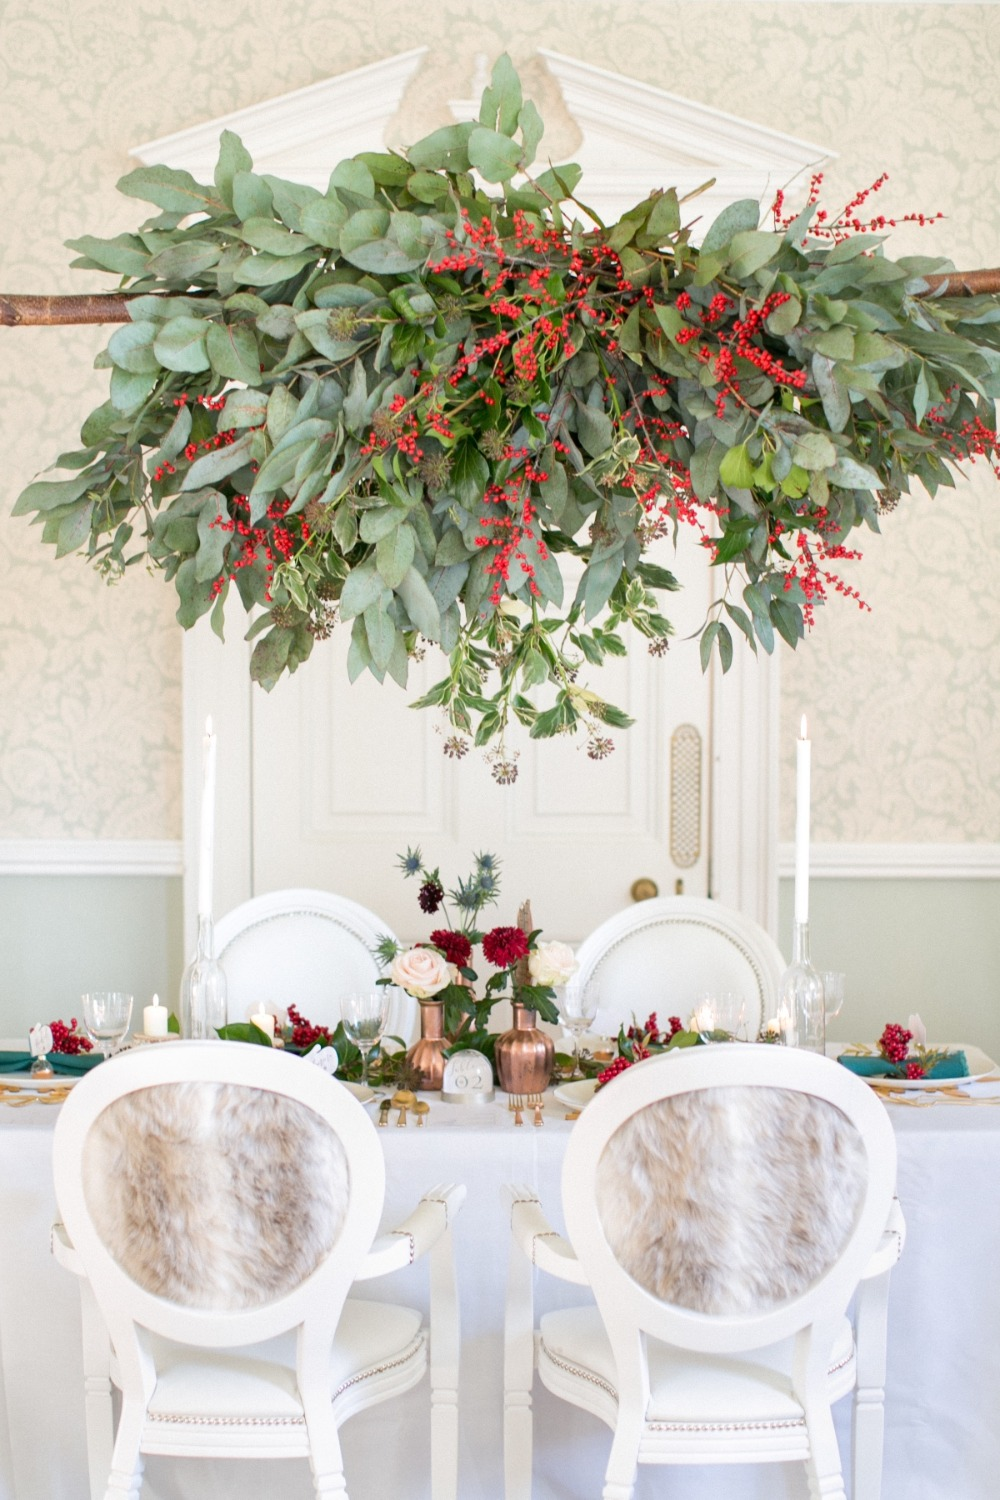 Winter reception with greenery